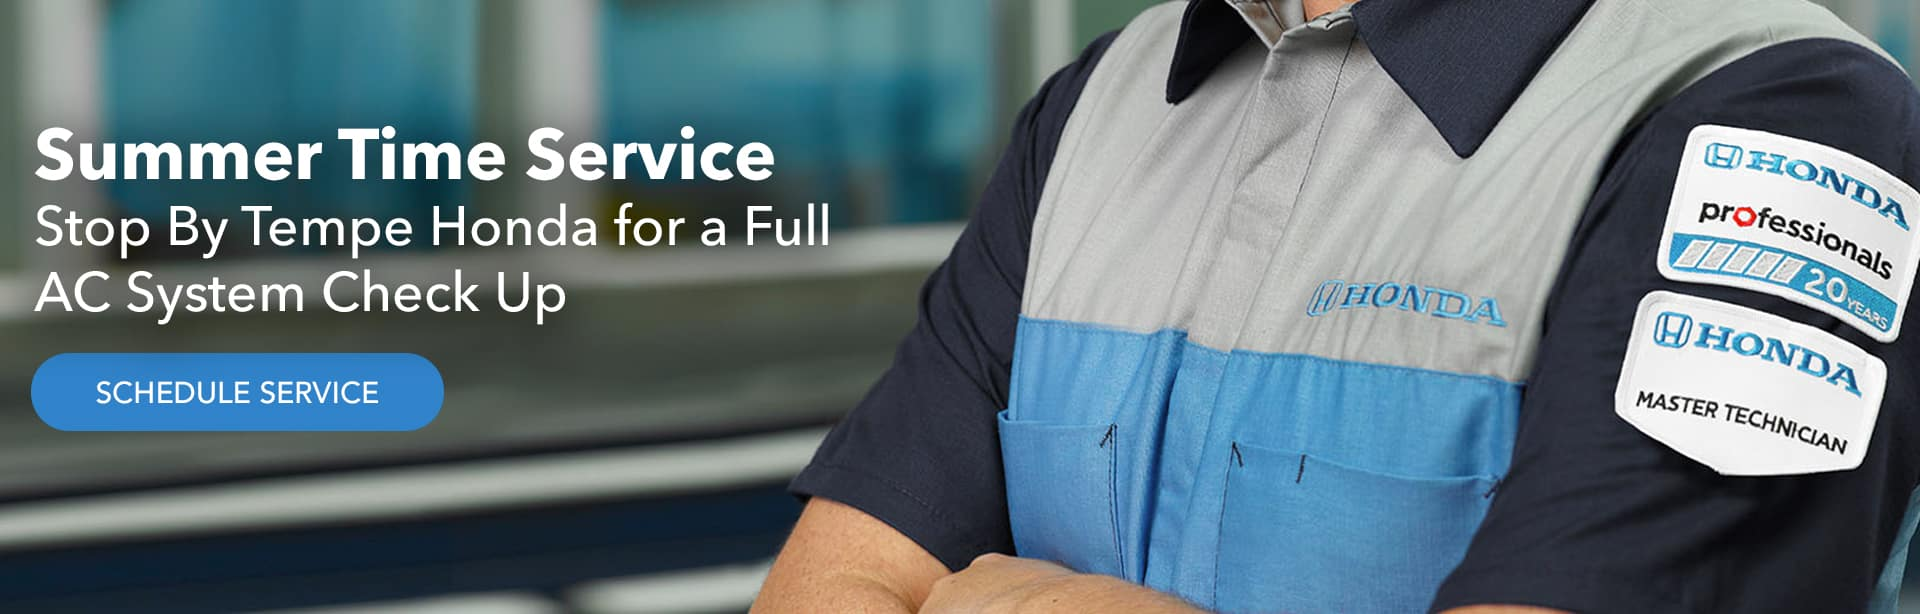 Summer Time Service. Stop By Tempe Honda for a Full AC System Check Up